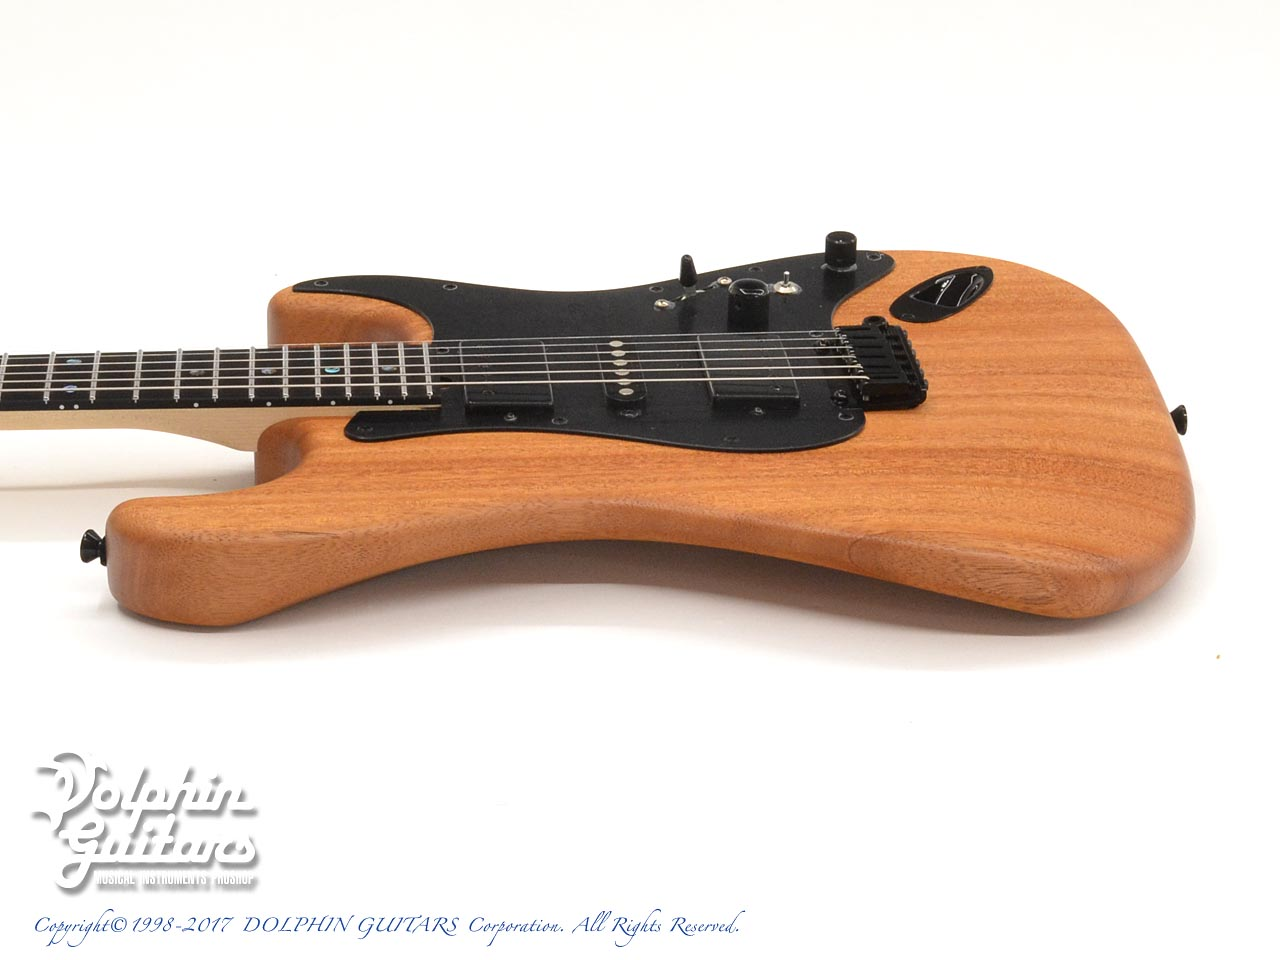 dragonfly: HI STA 22 FULL SIZE H-S-H Maple Neck (African Mahogany) (2)